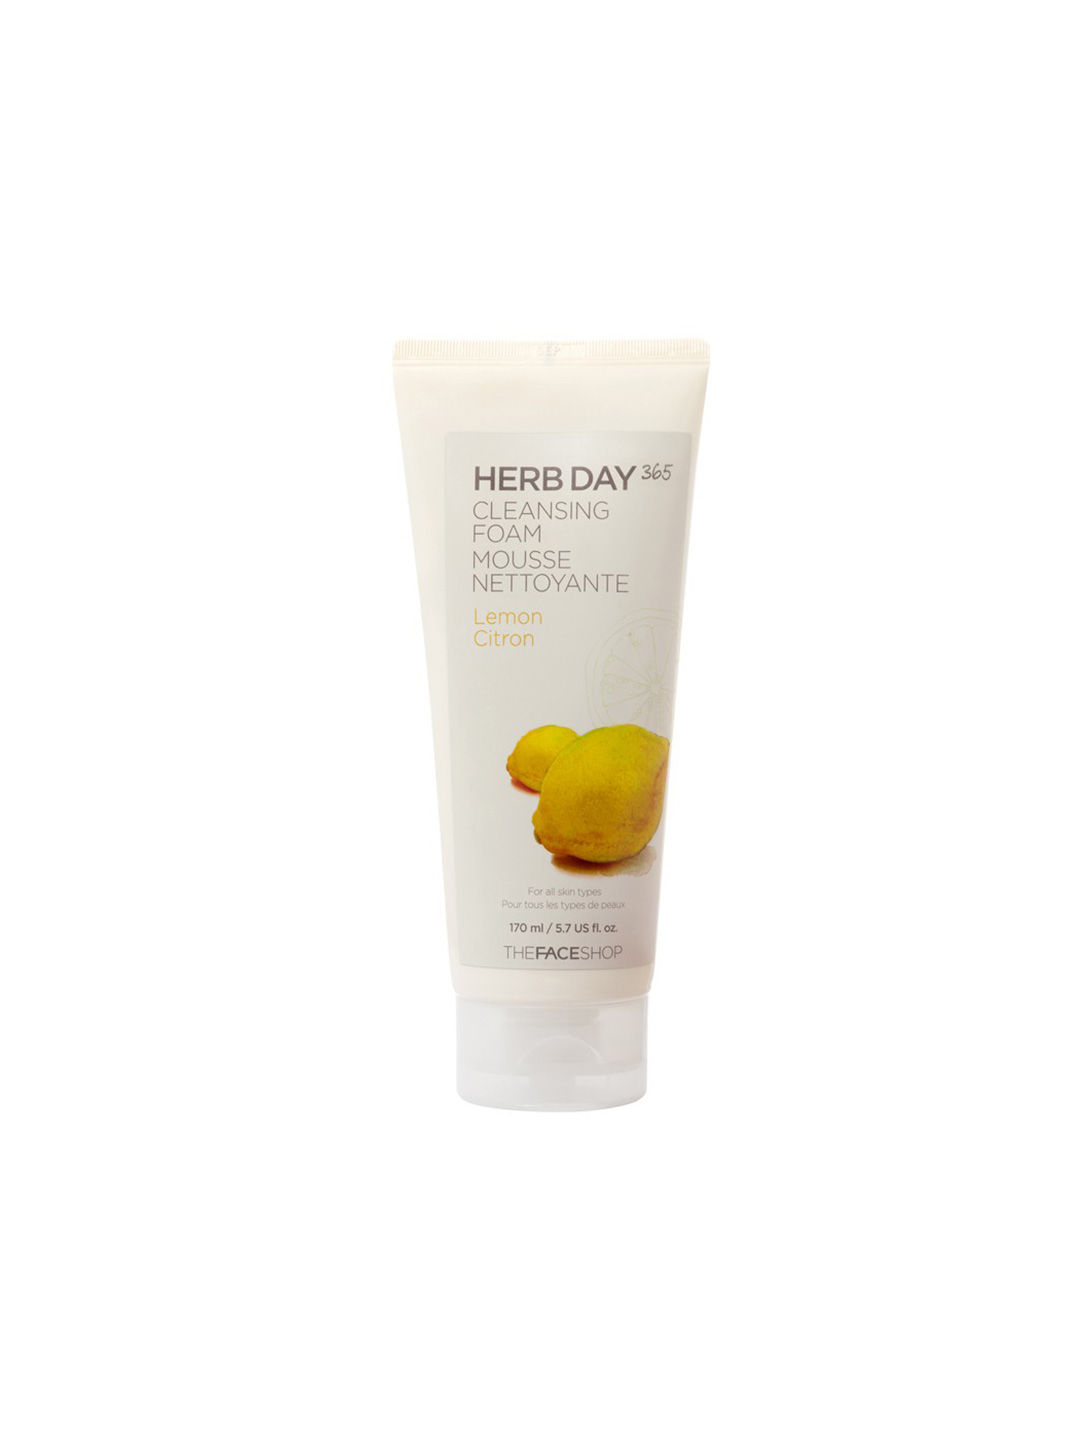 The Face Shop Herb Day 365 Cleansing Foam Lemon